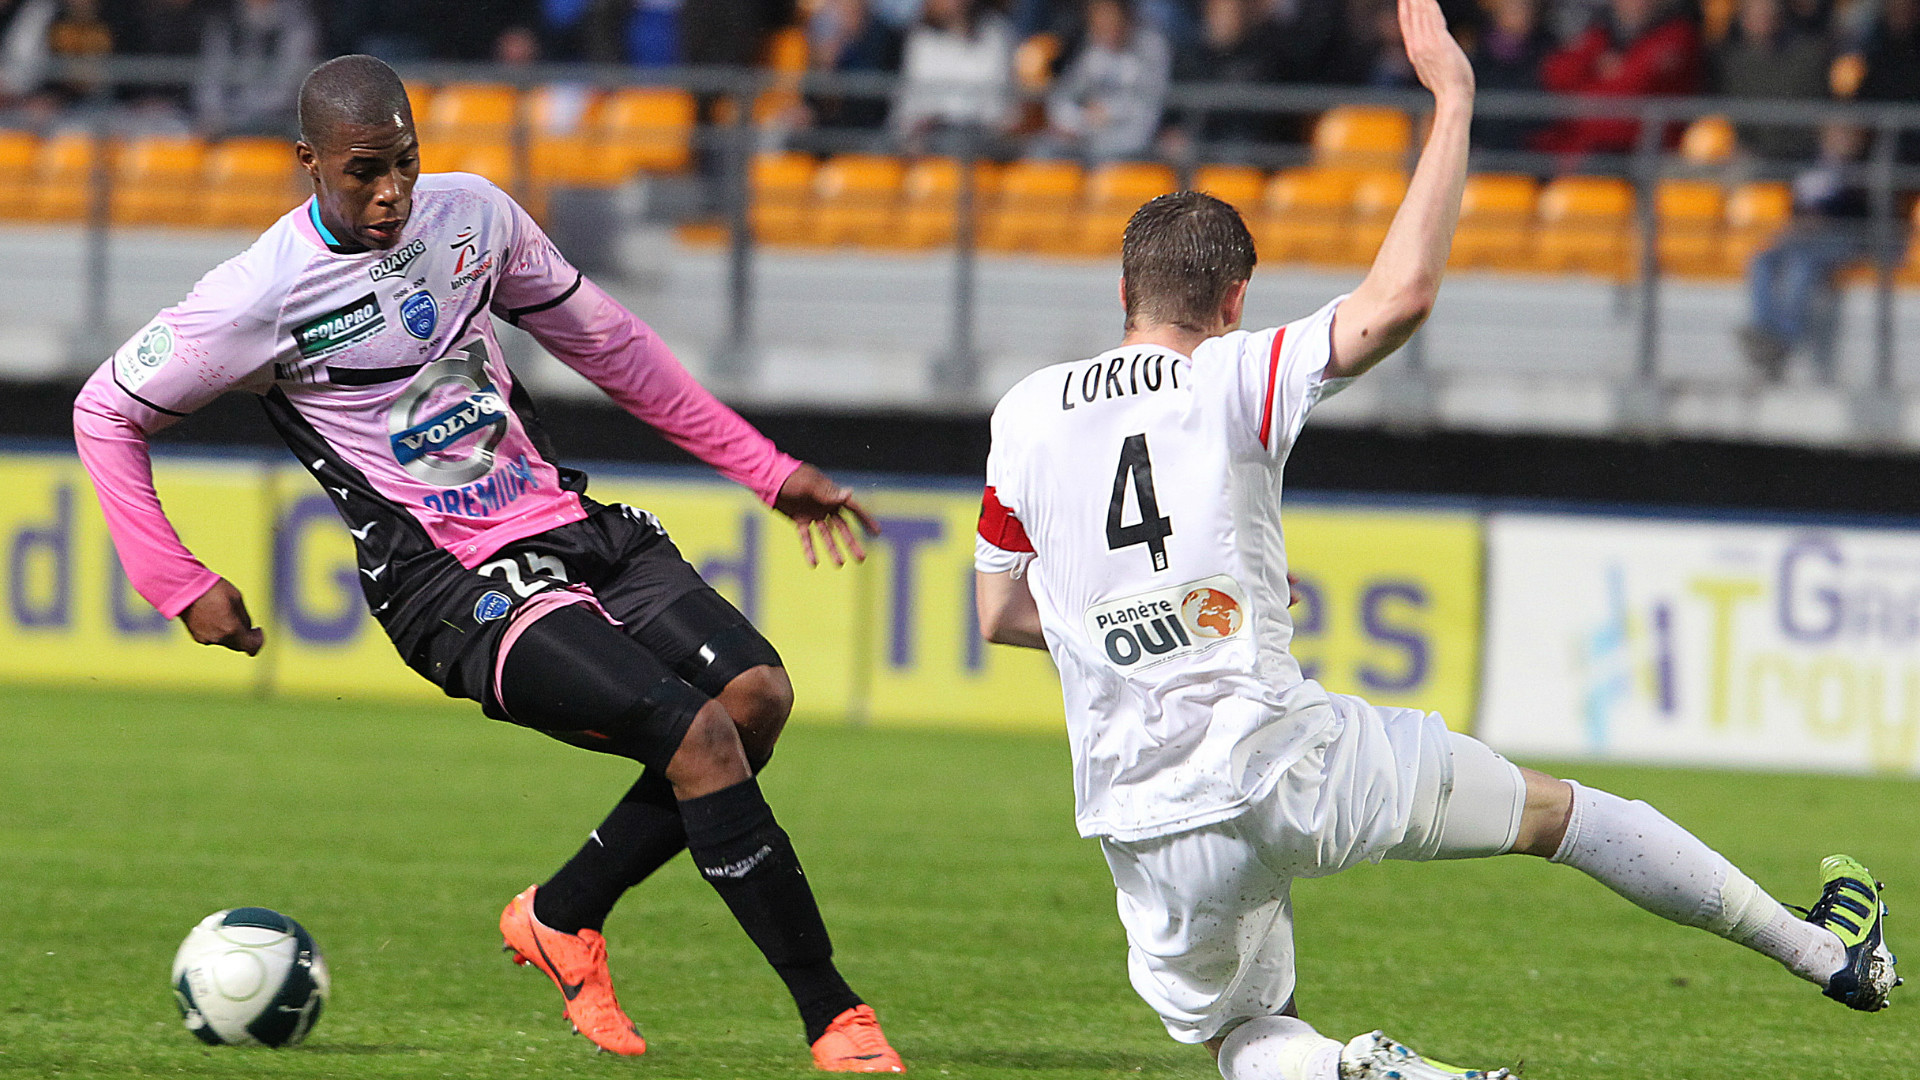 Sidibe in action for Troyes